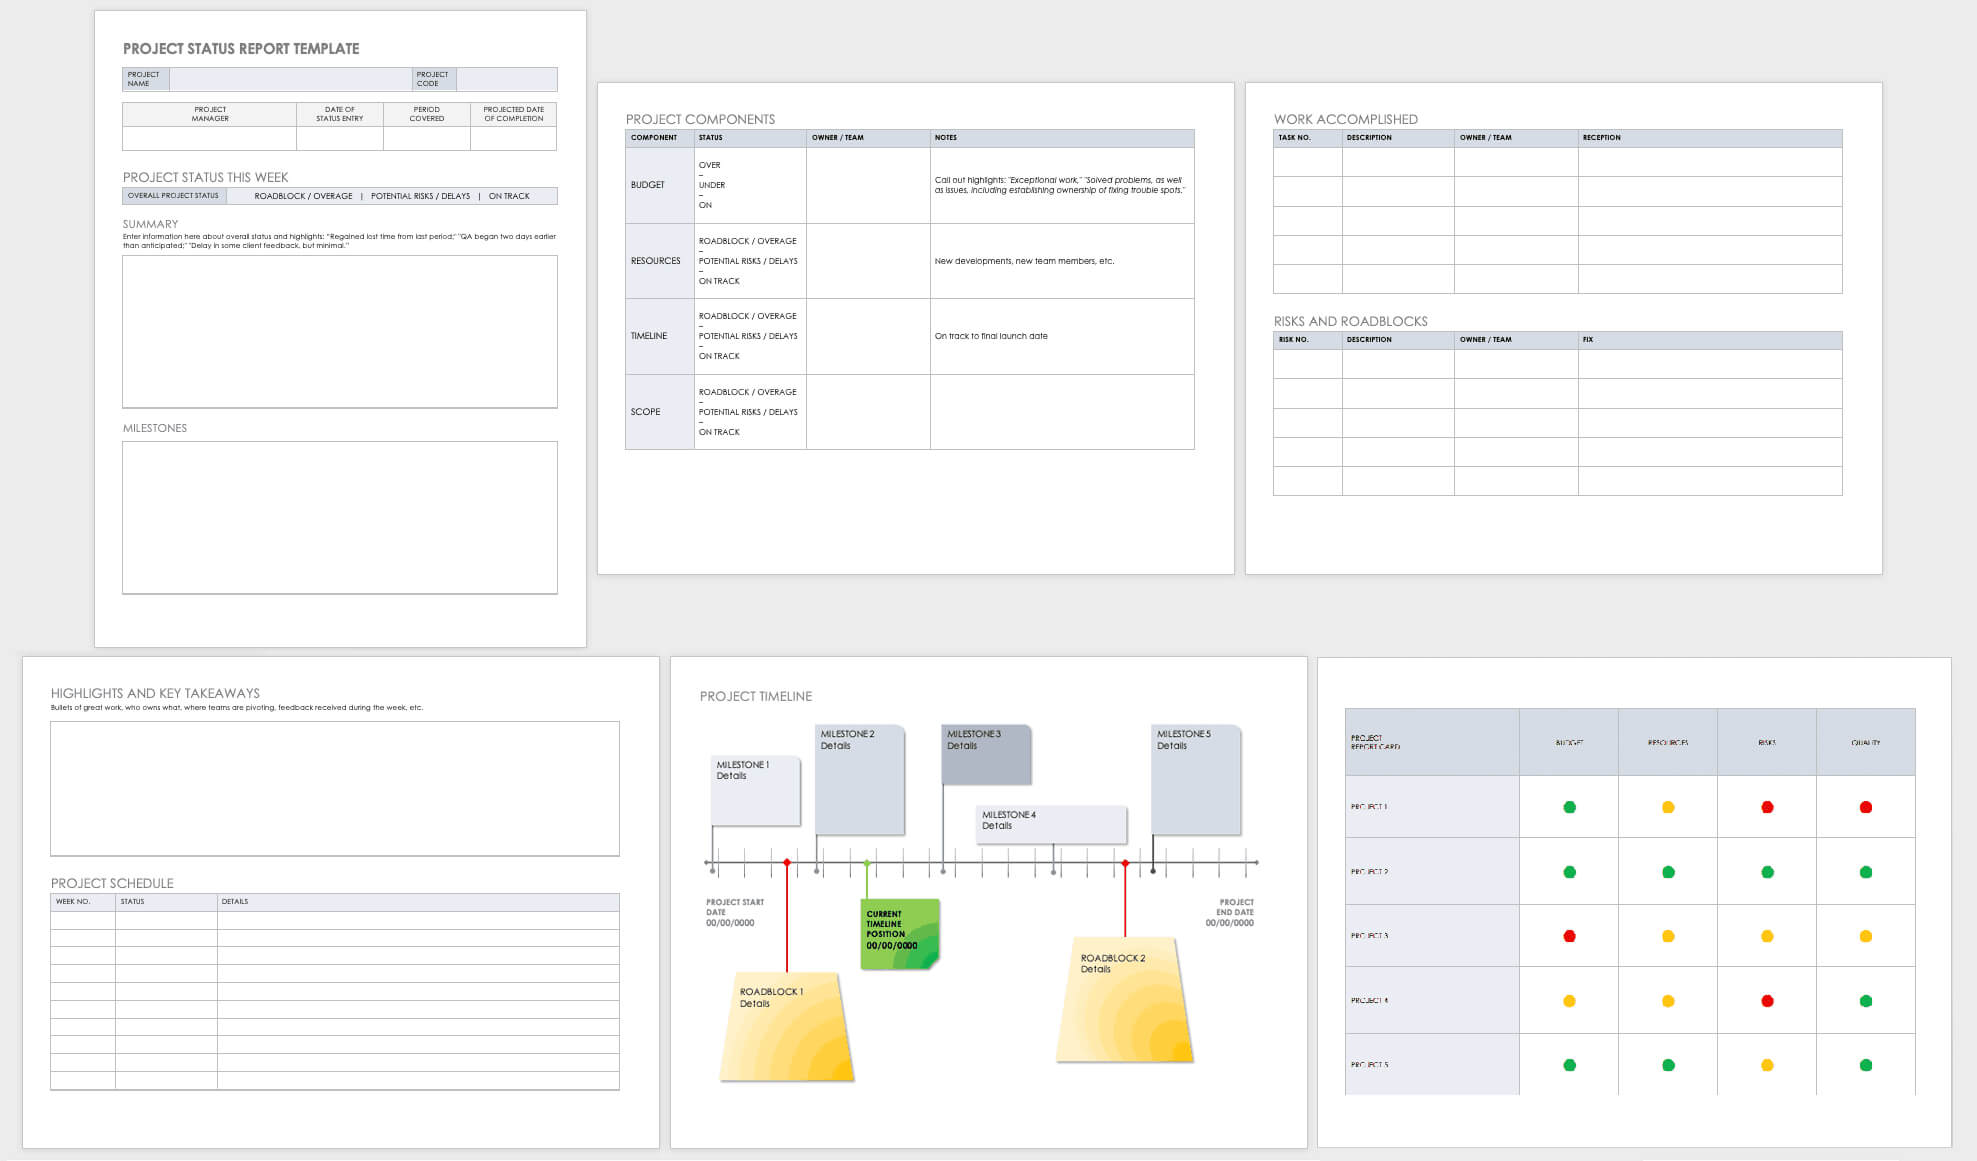 Free Project Report Templates | Smartsheet With Regard To Monthly Status Report Template Project Management